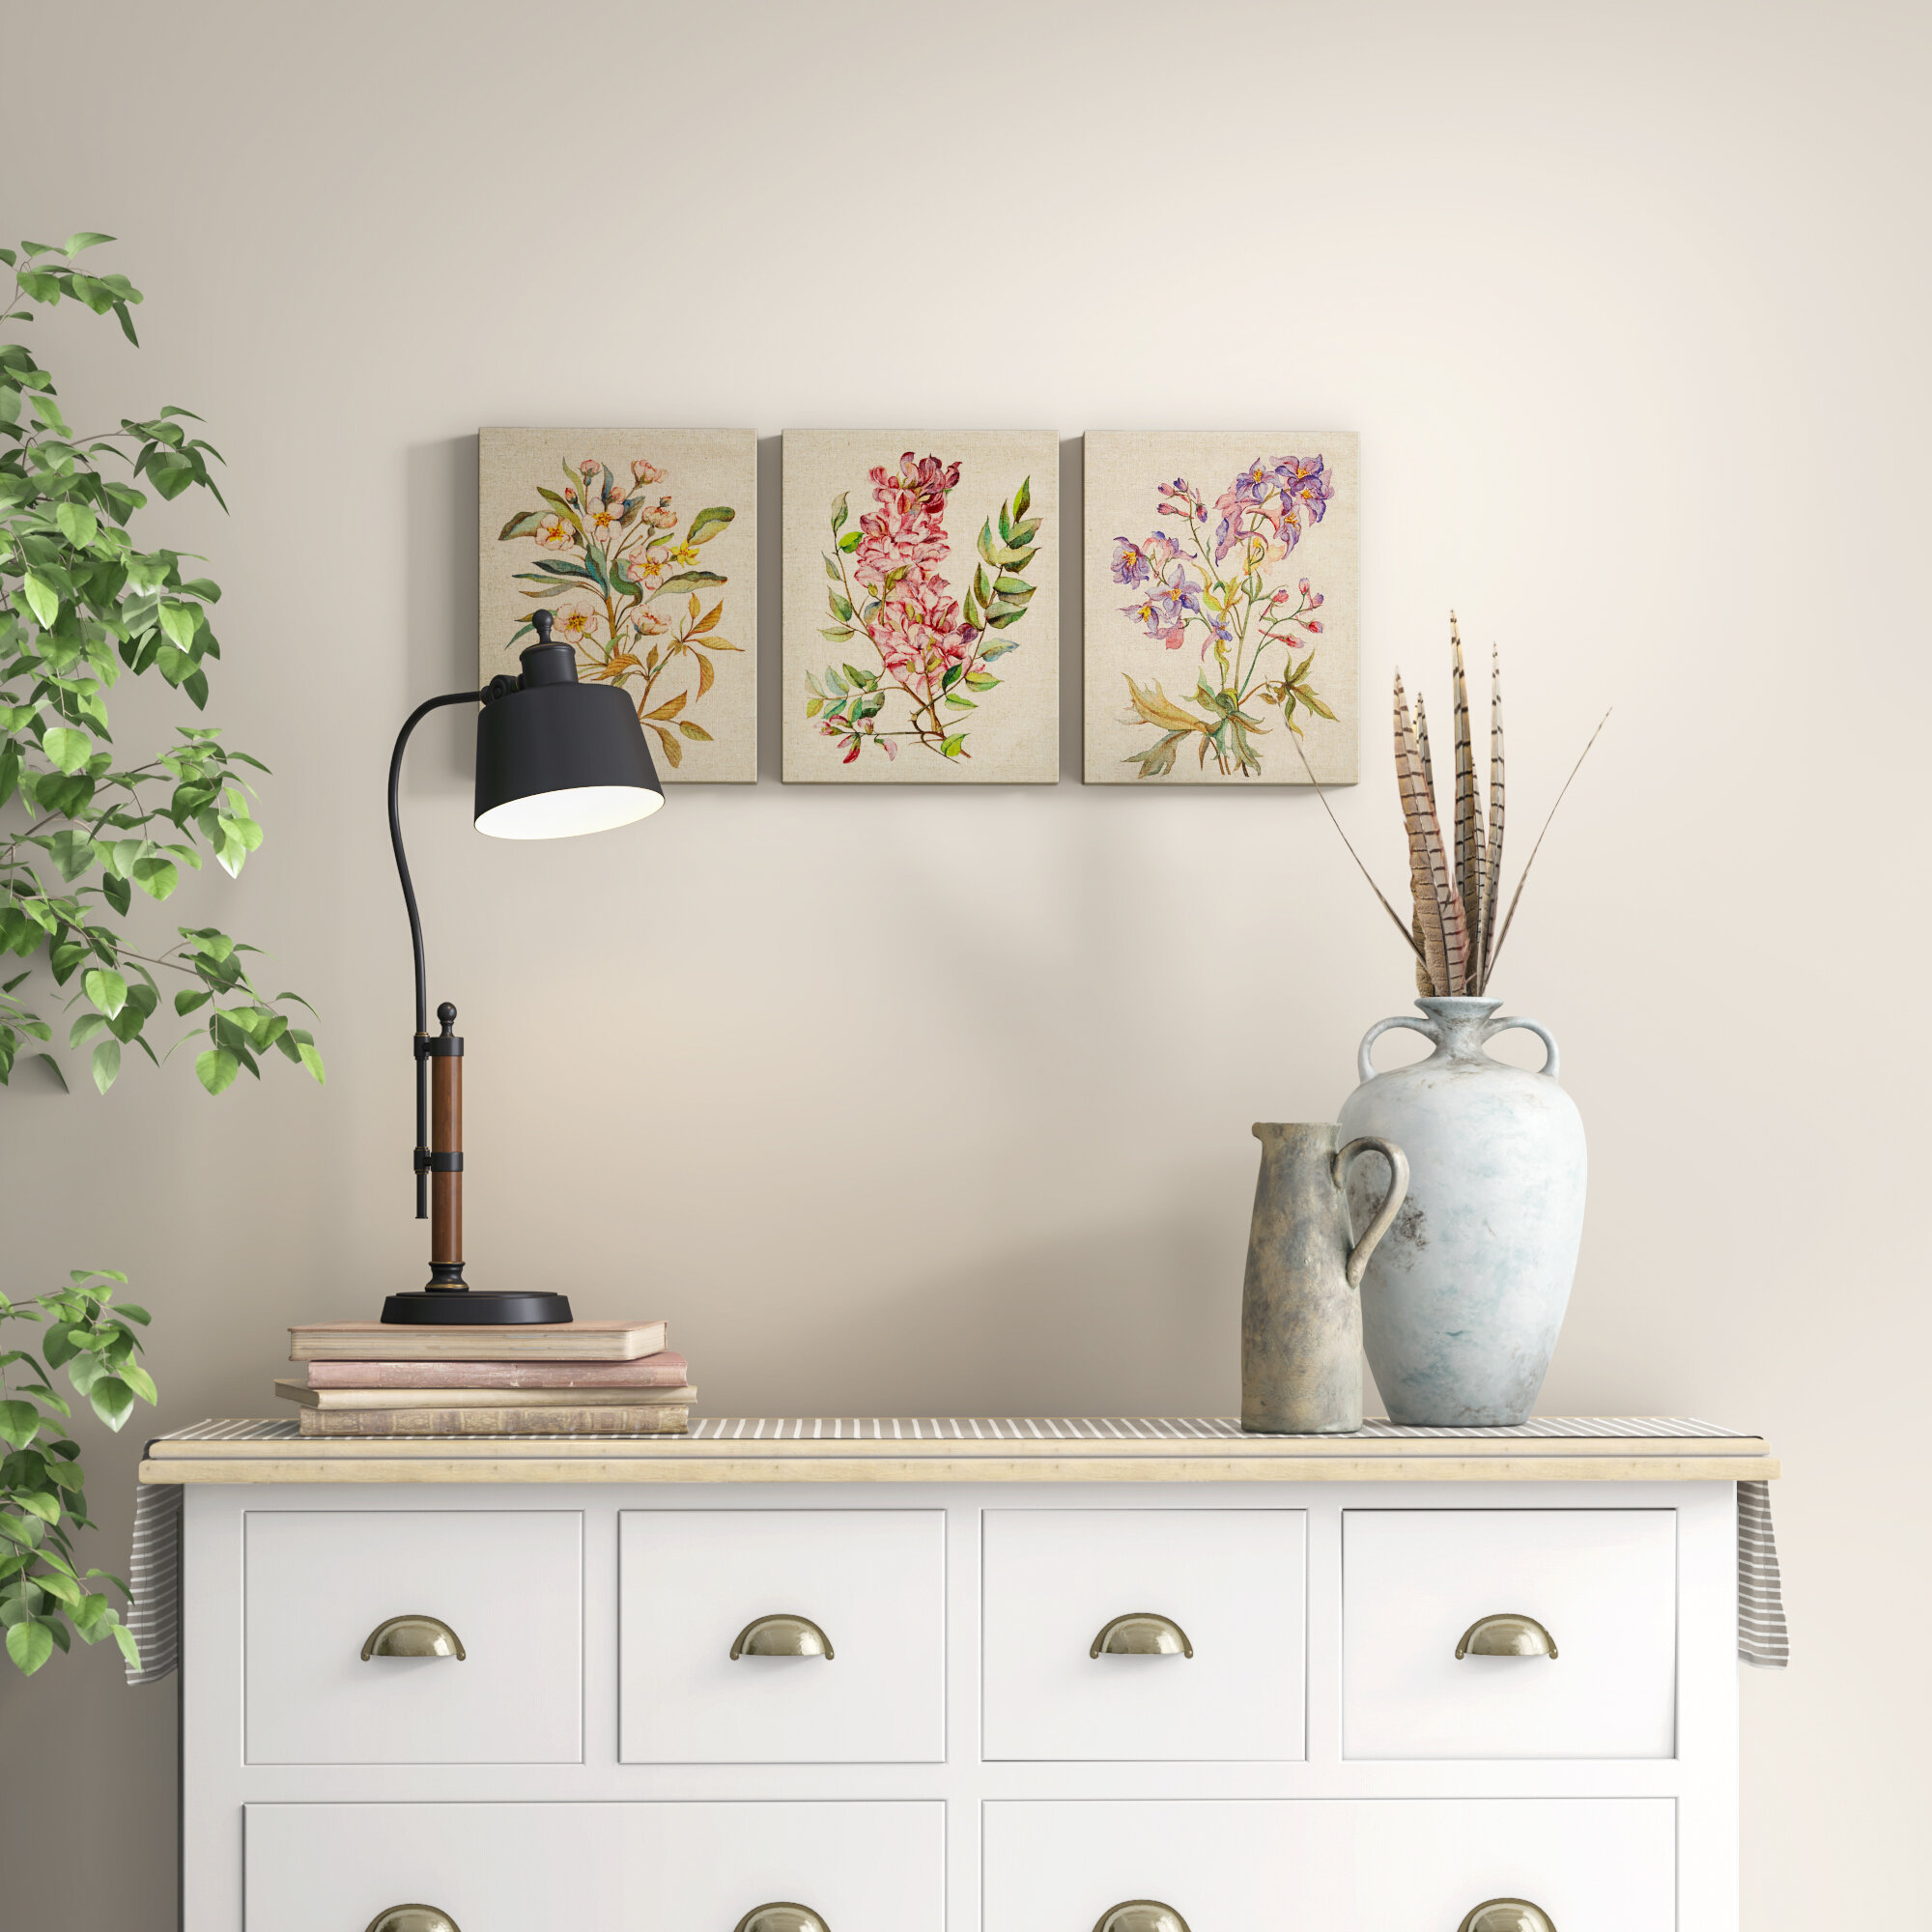 Farmhouse & Rustic 3 Piece Wall Art | Birch Lane Throughout 3 Piece Magnolia Brown Panel Wall Decor Sets (View 15 of 30)